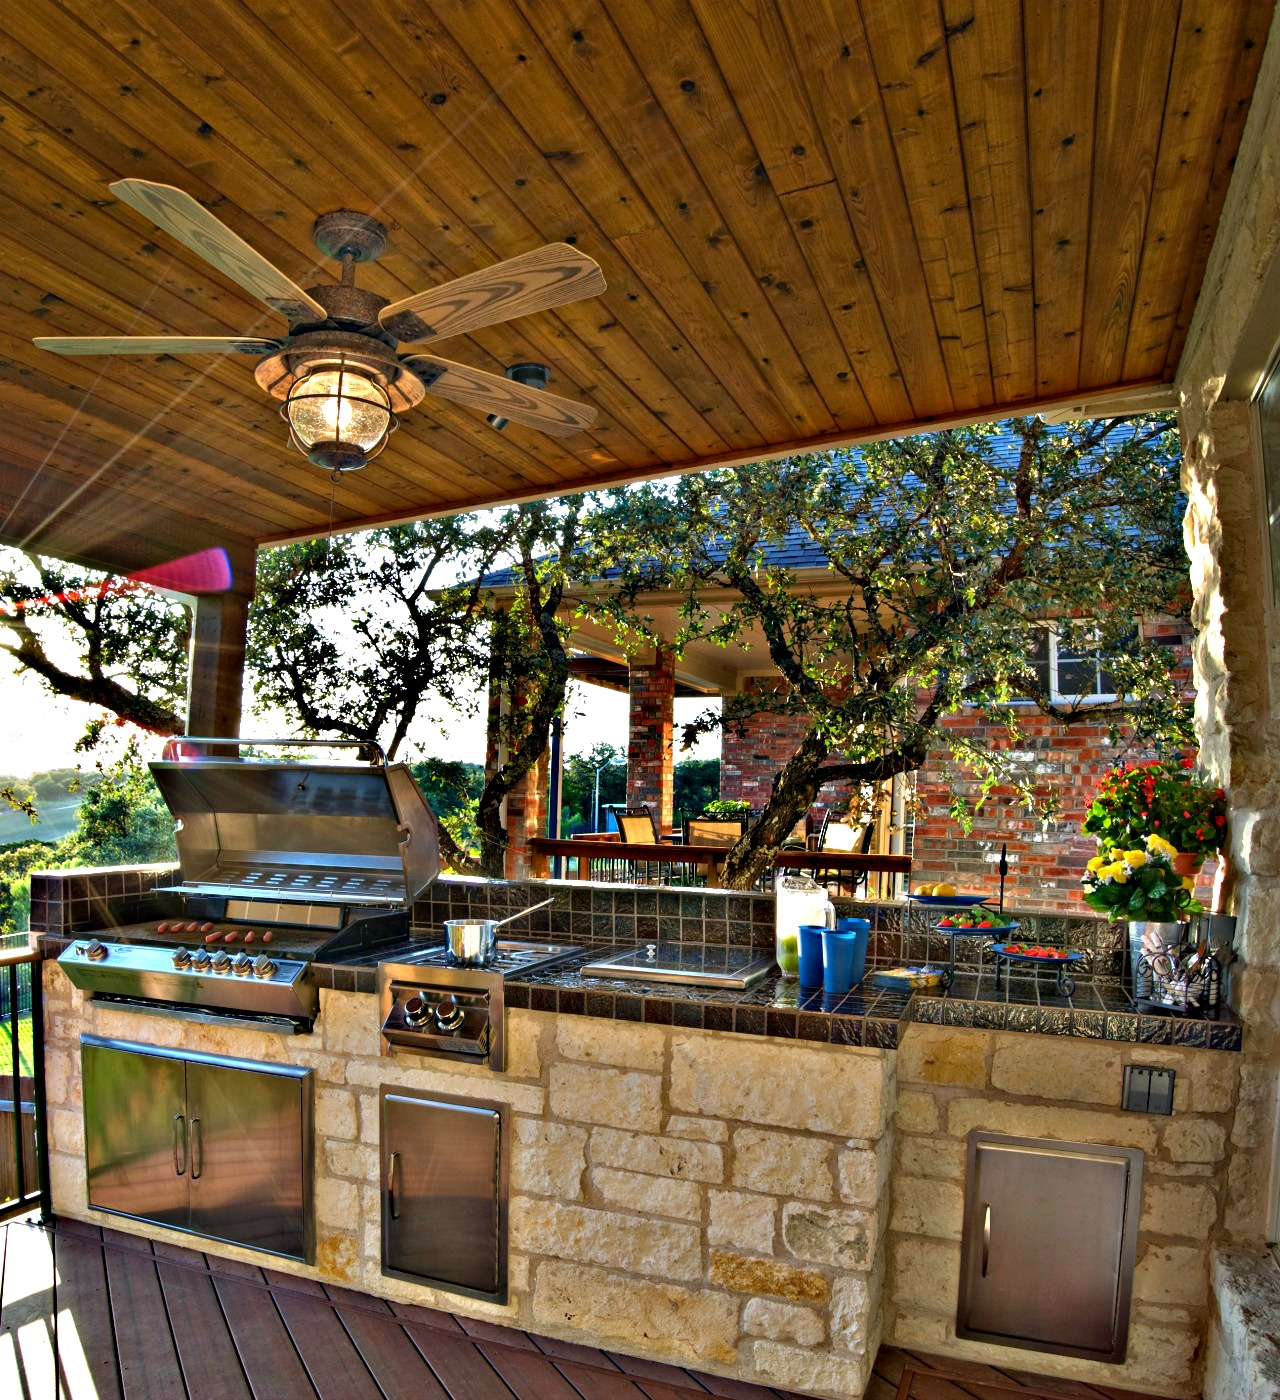 Amazing Outdoor Kitchens That You Might Have While Living: Porches & Outdoor Rooms